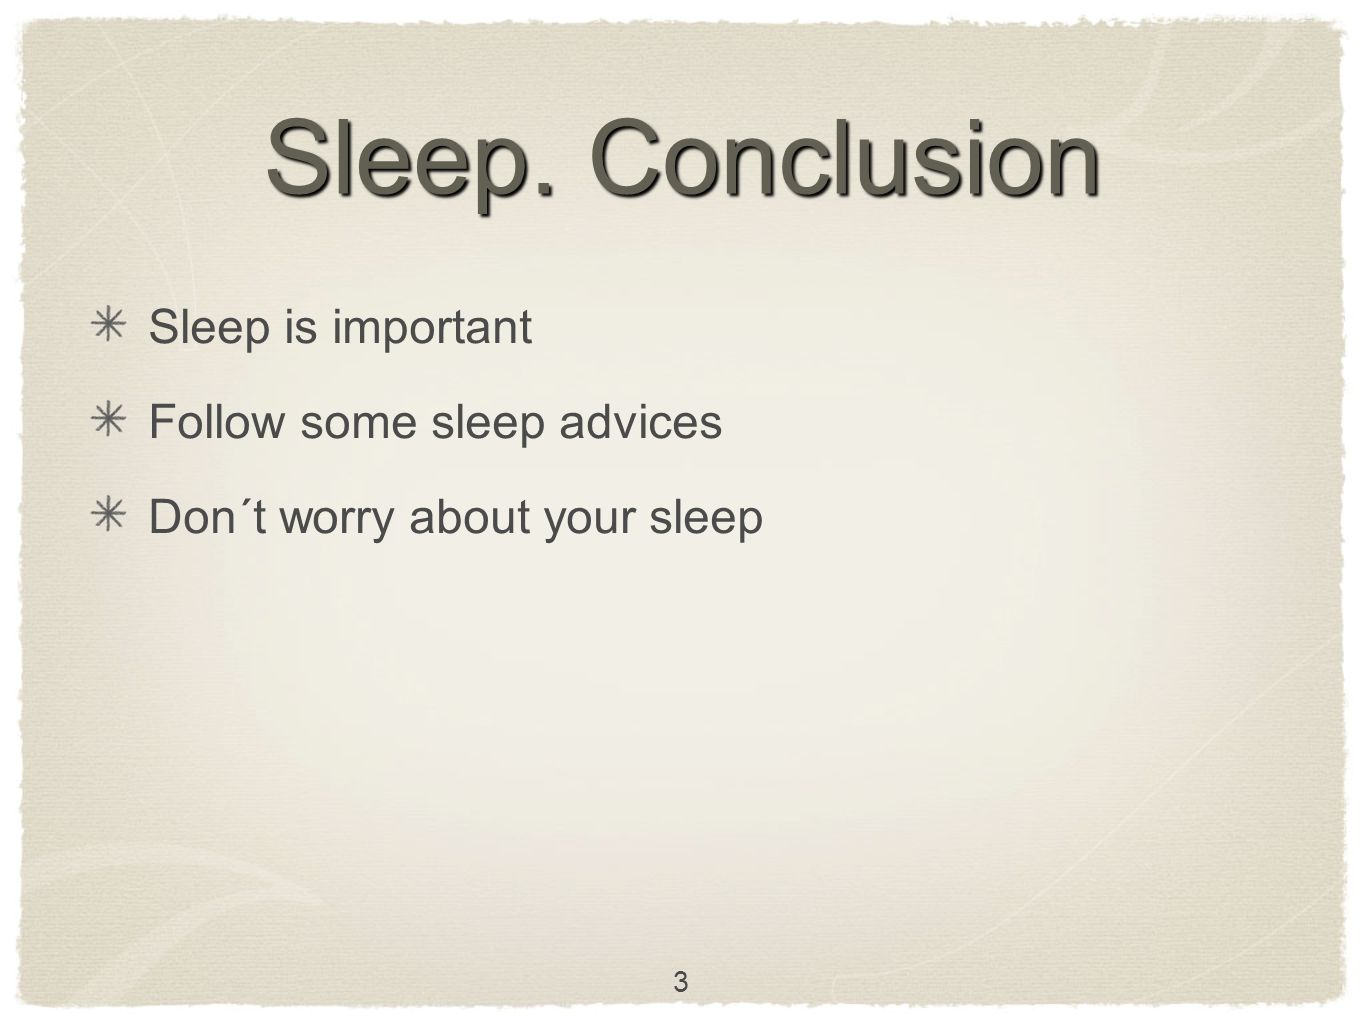 Sleep. Conclusion Sleep is important Follow some sleep advices Don´t worry about your sleep 3